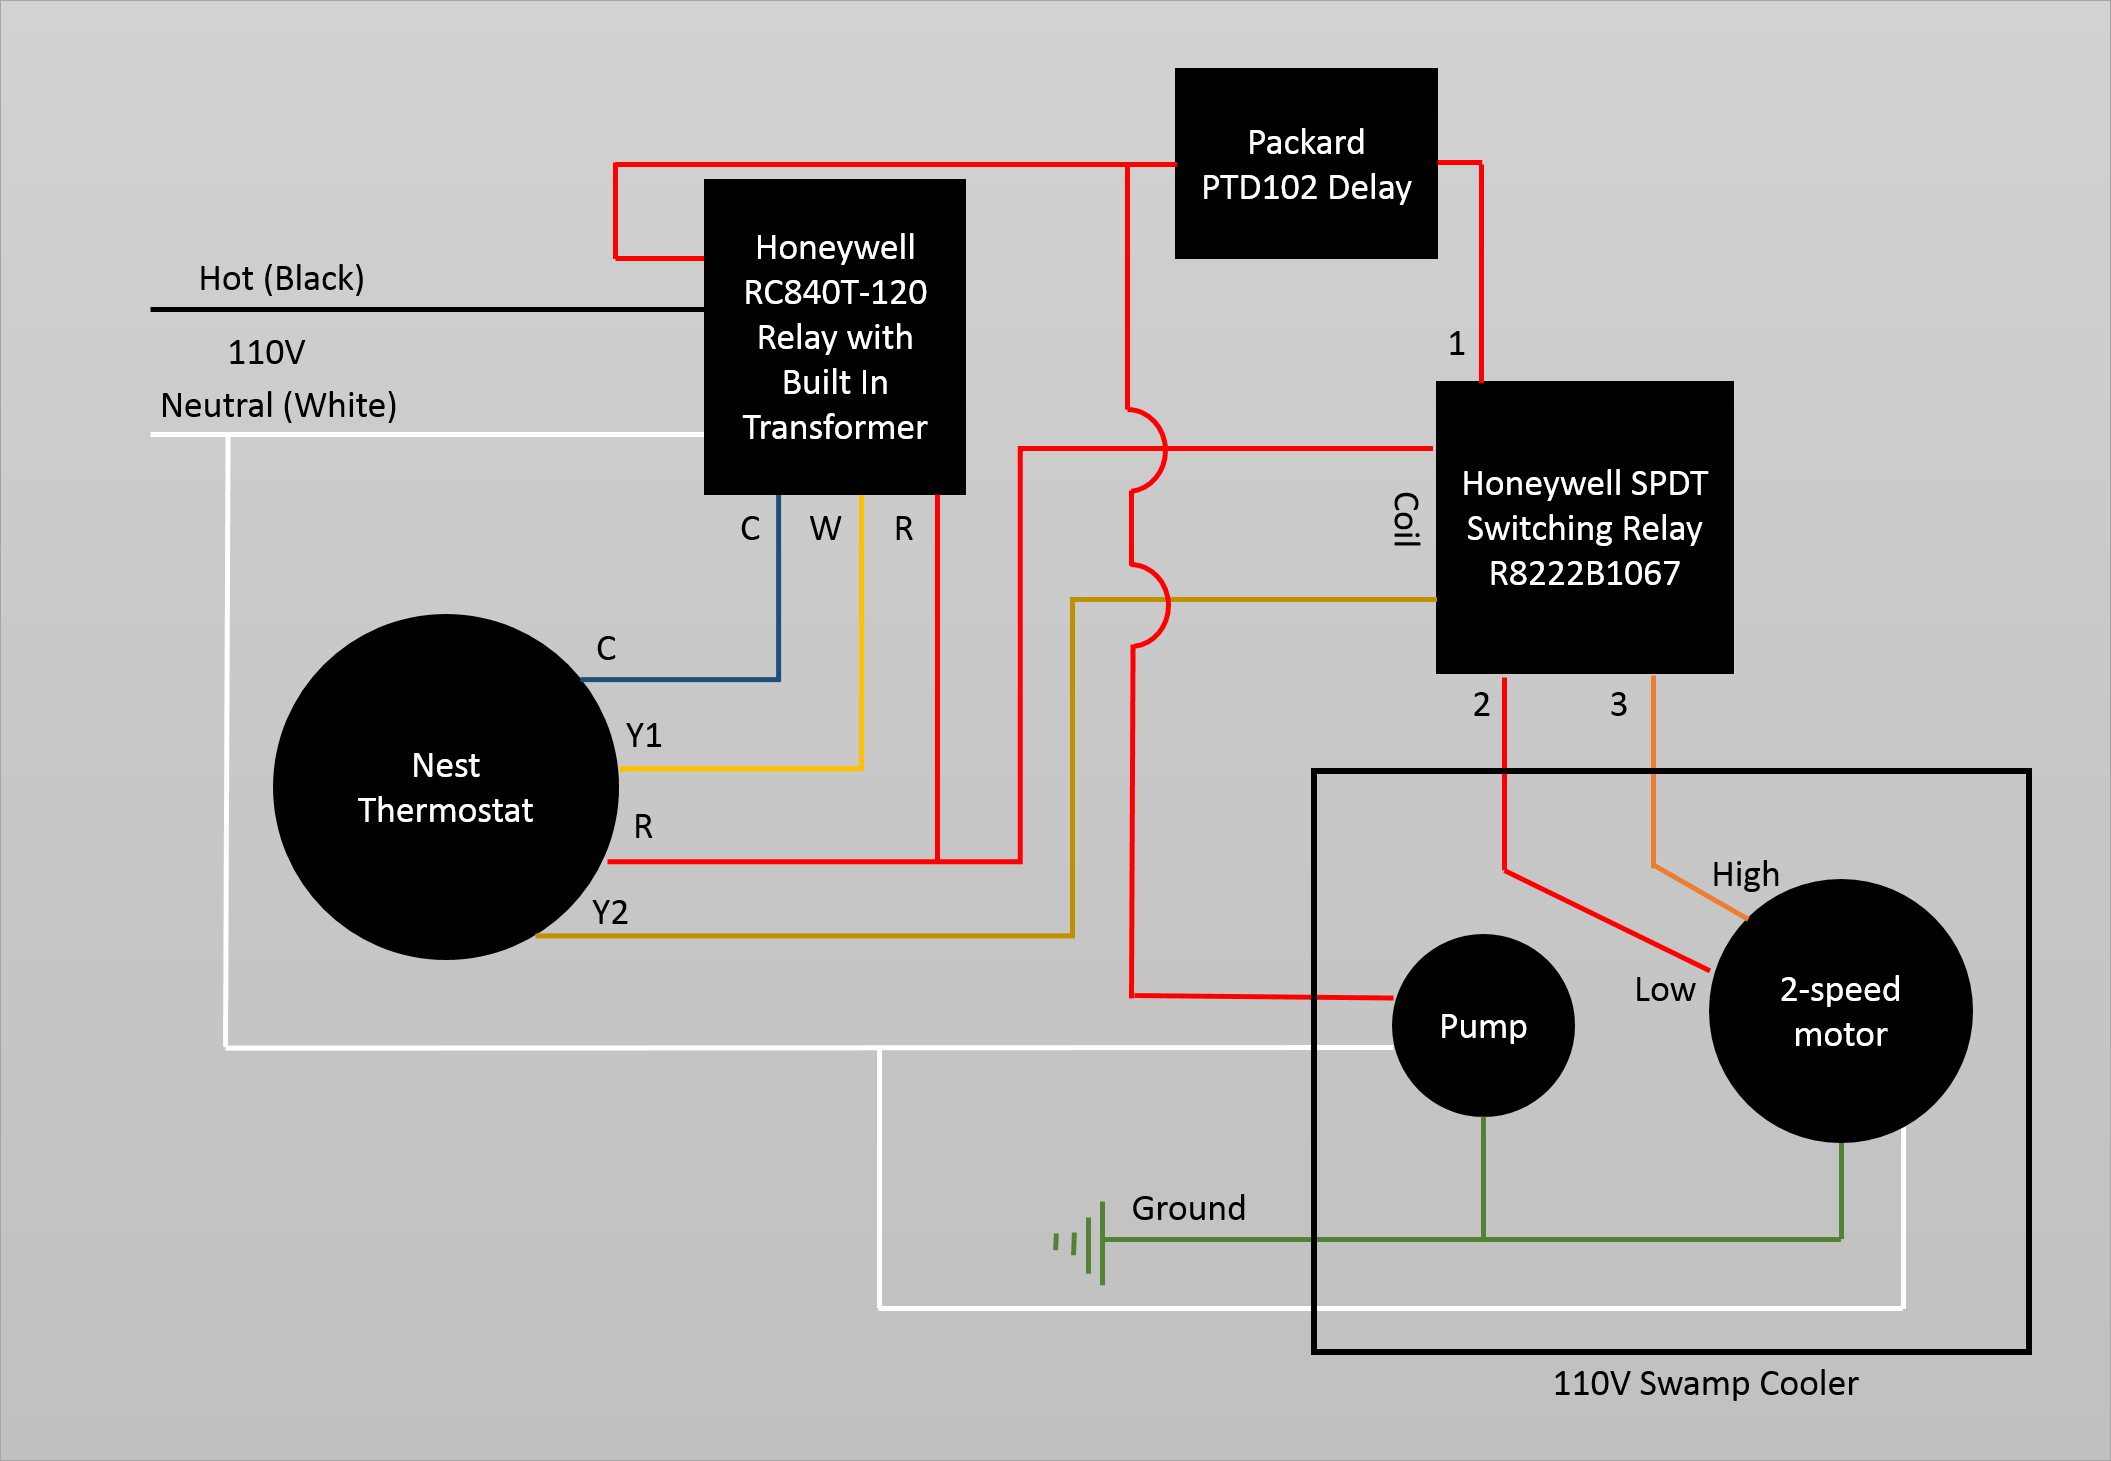 Wiring - Controlling 110V Swamp Cooler Using Nest Thermostat - Home - Nest Custom Wiring Diagram